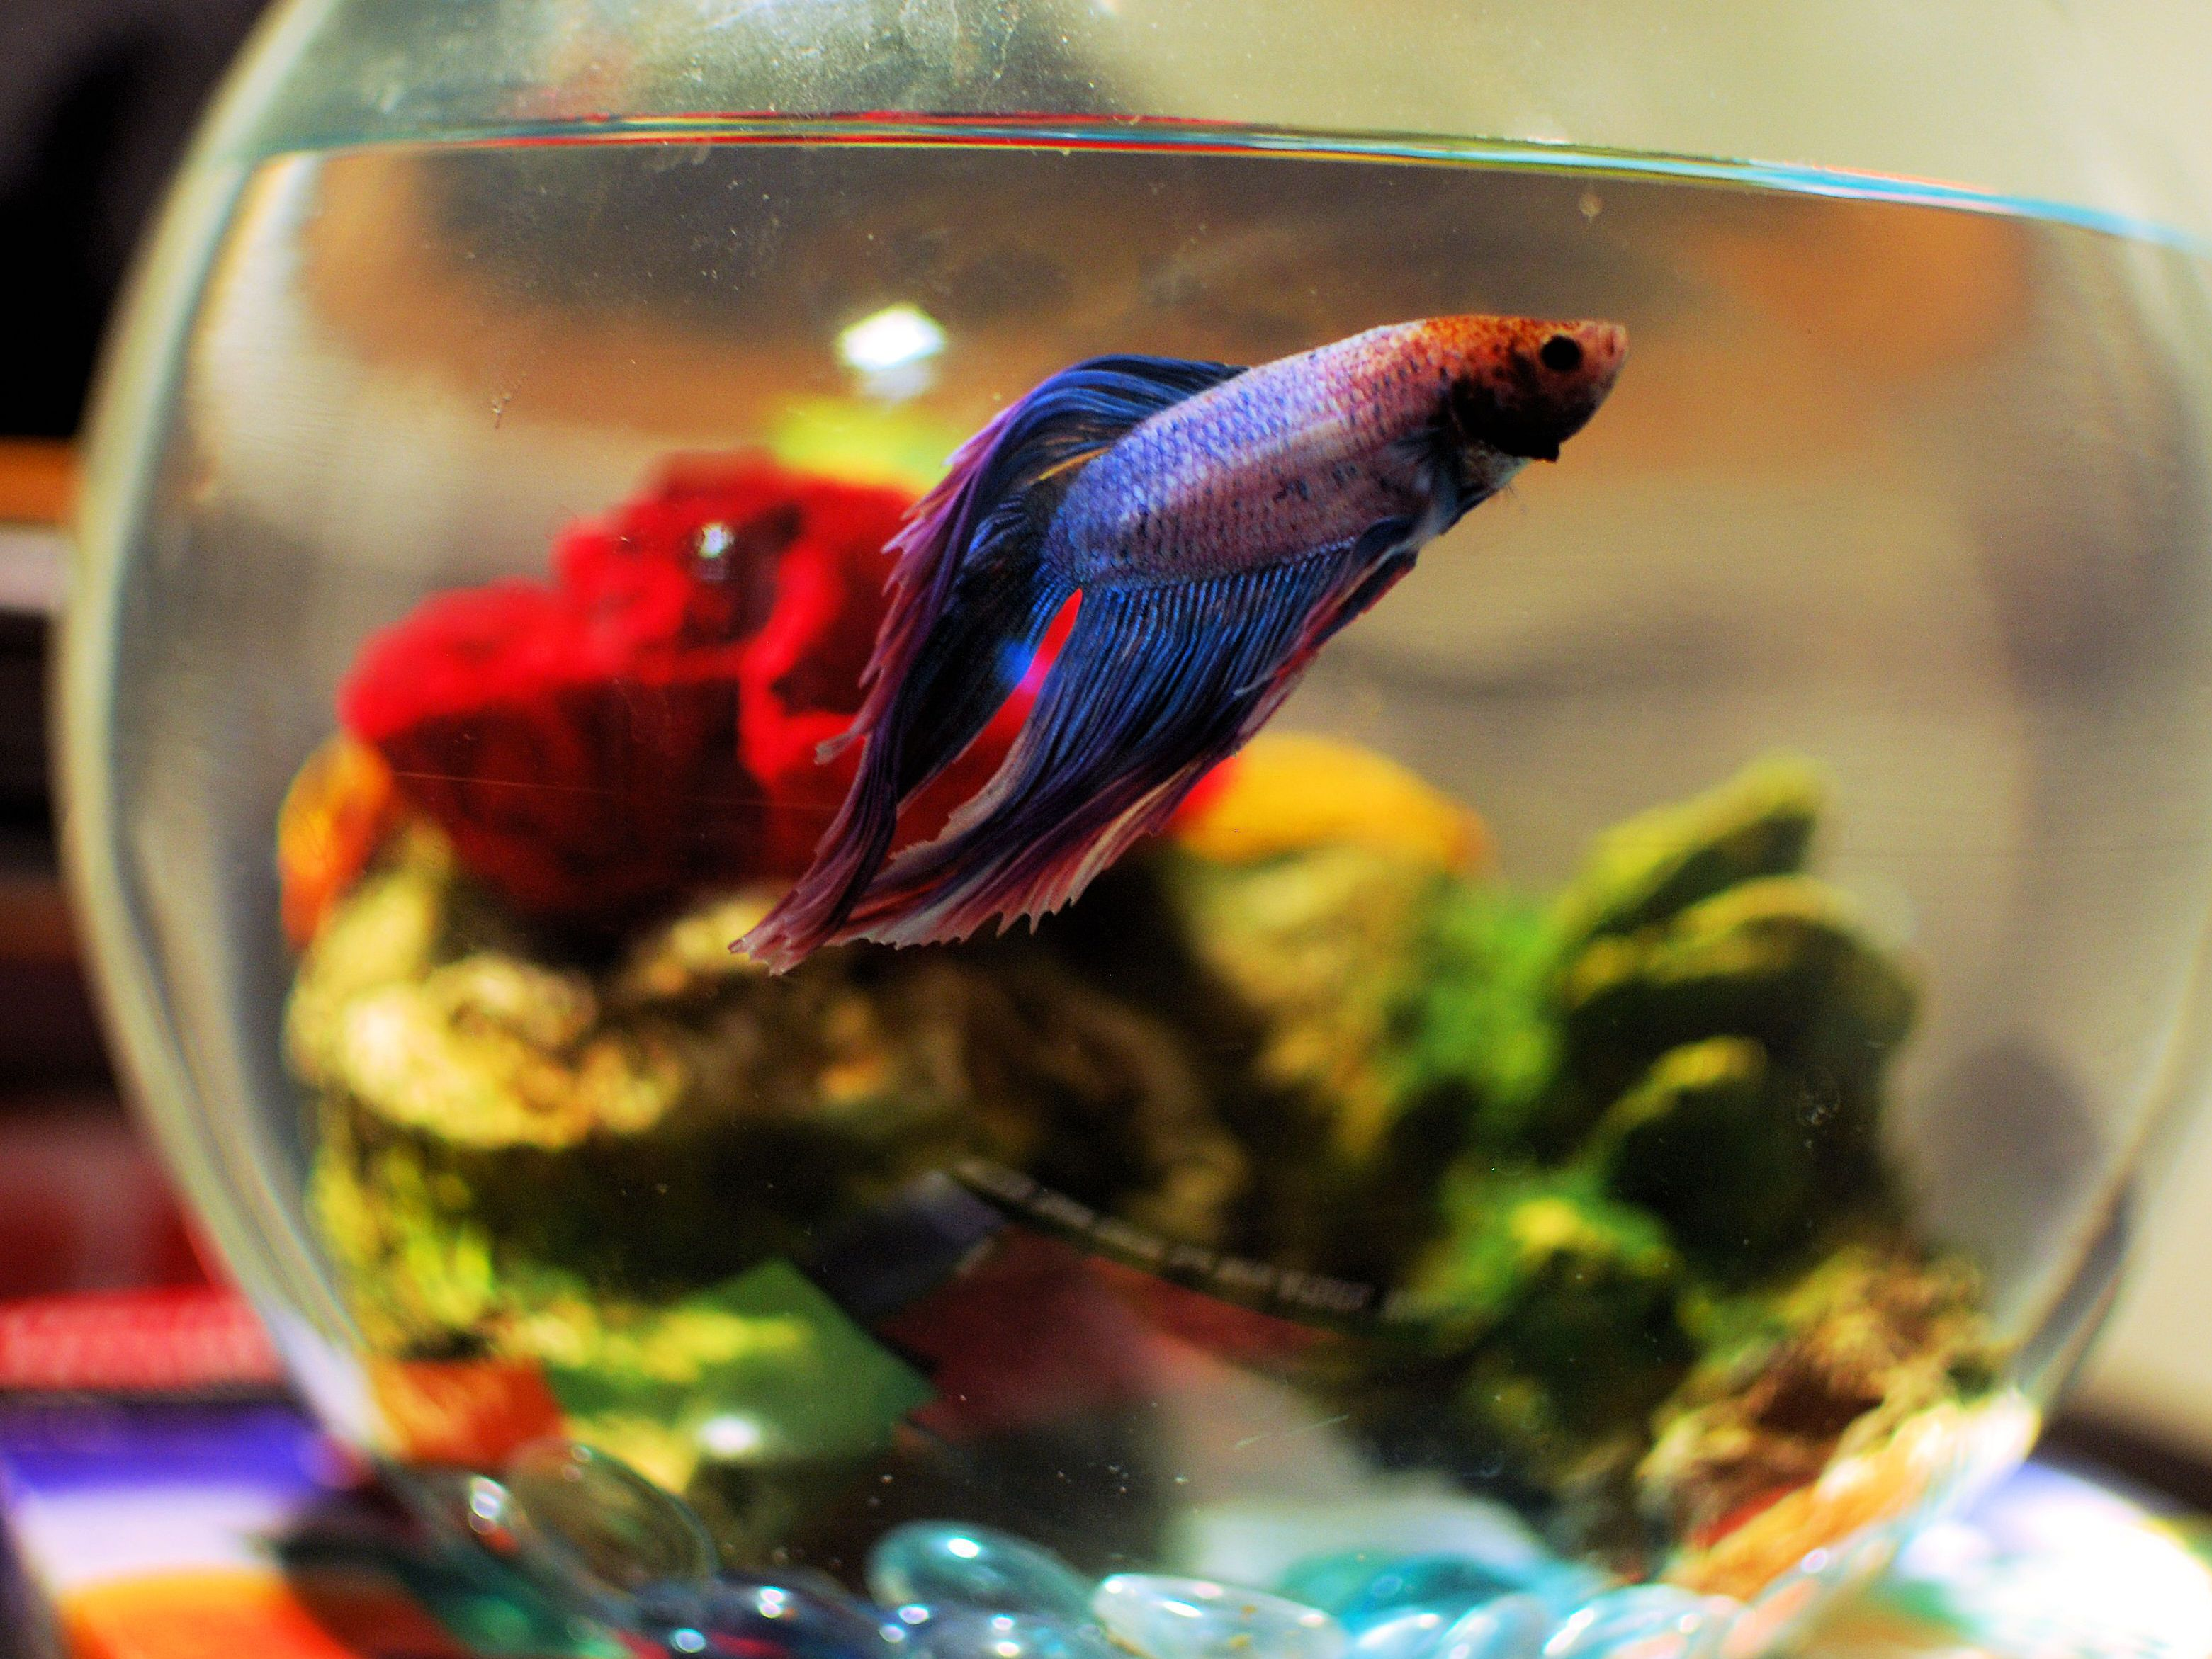 Betta Tanks And Condos For Multiple Betta Fish,Types Of Fabric For Dresses